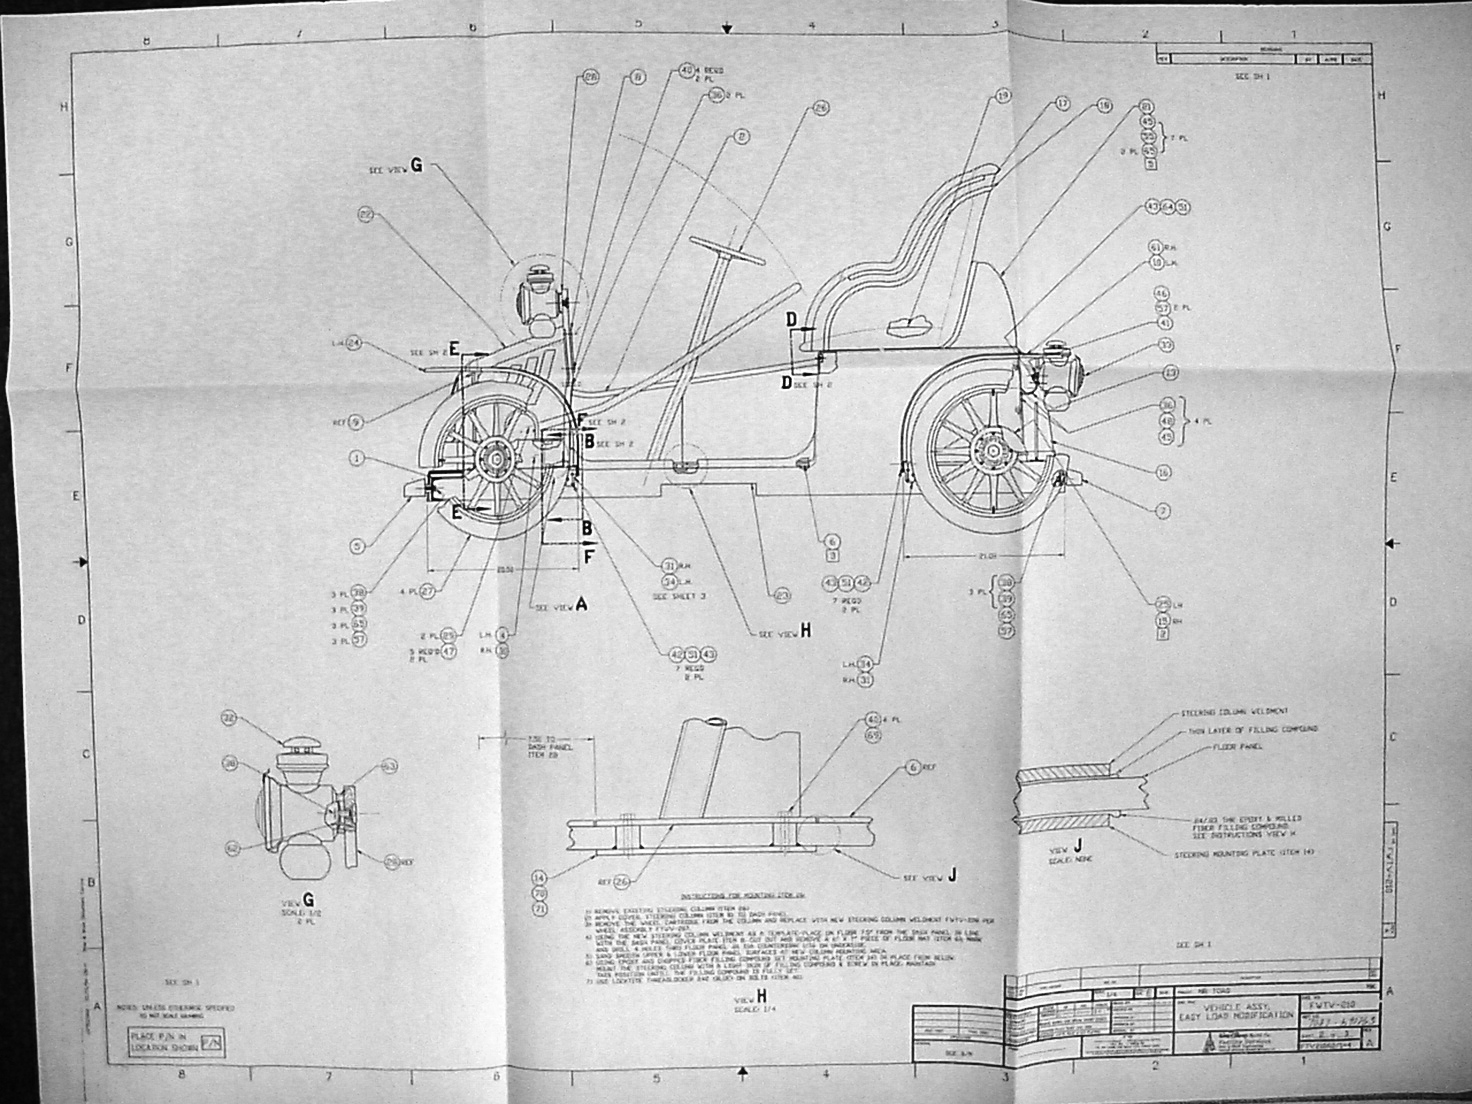 Walt Disney World Fantasyland Blueprints